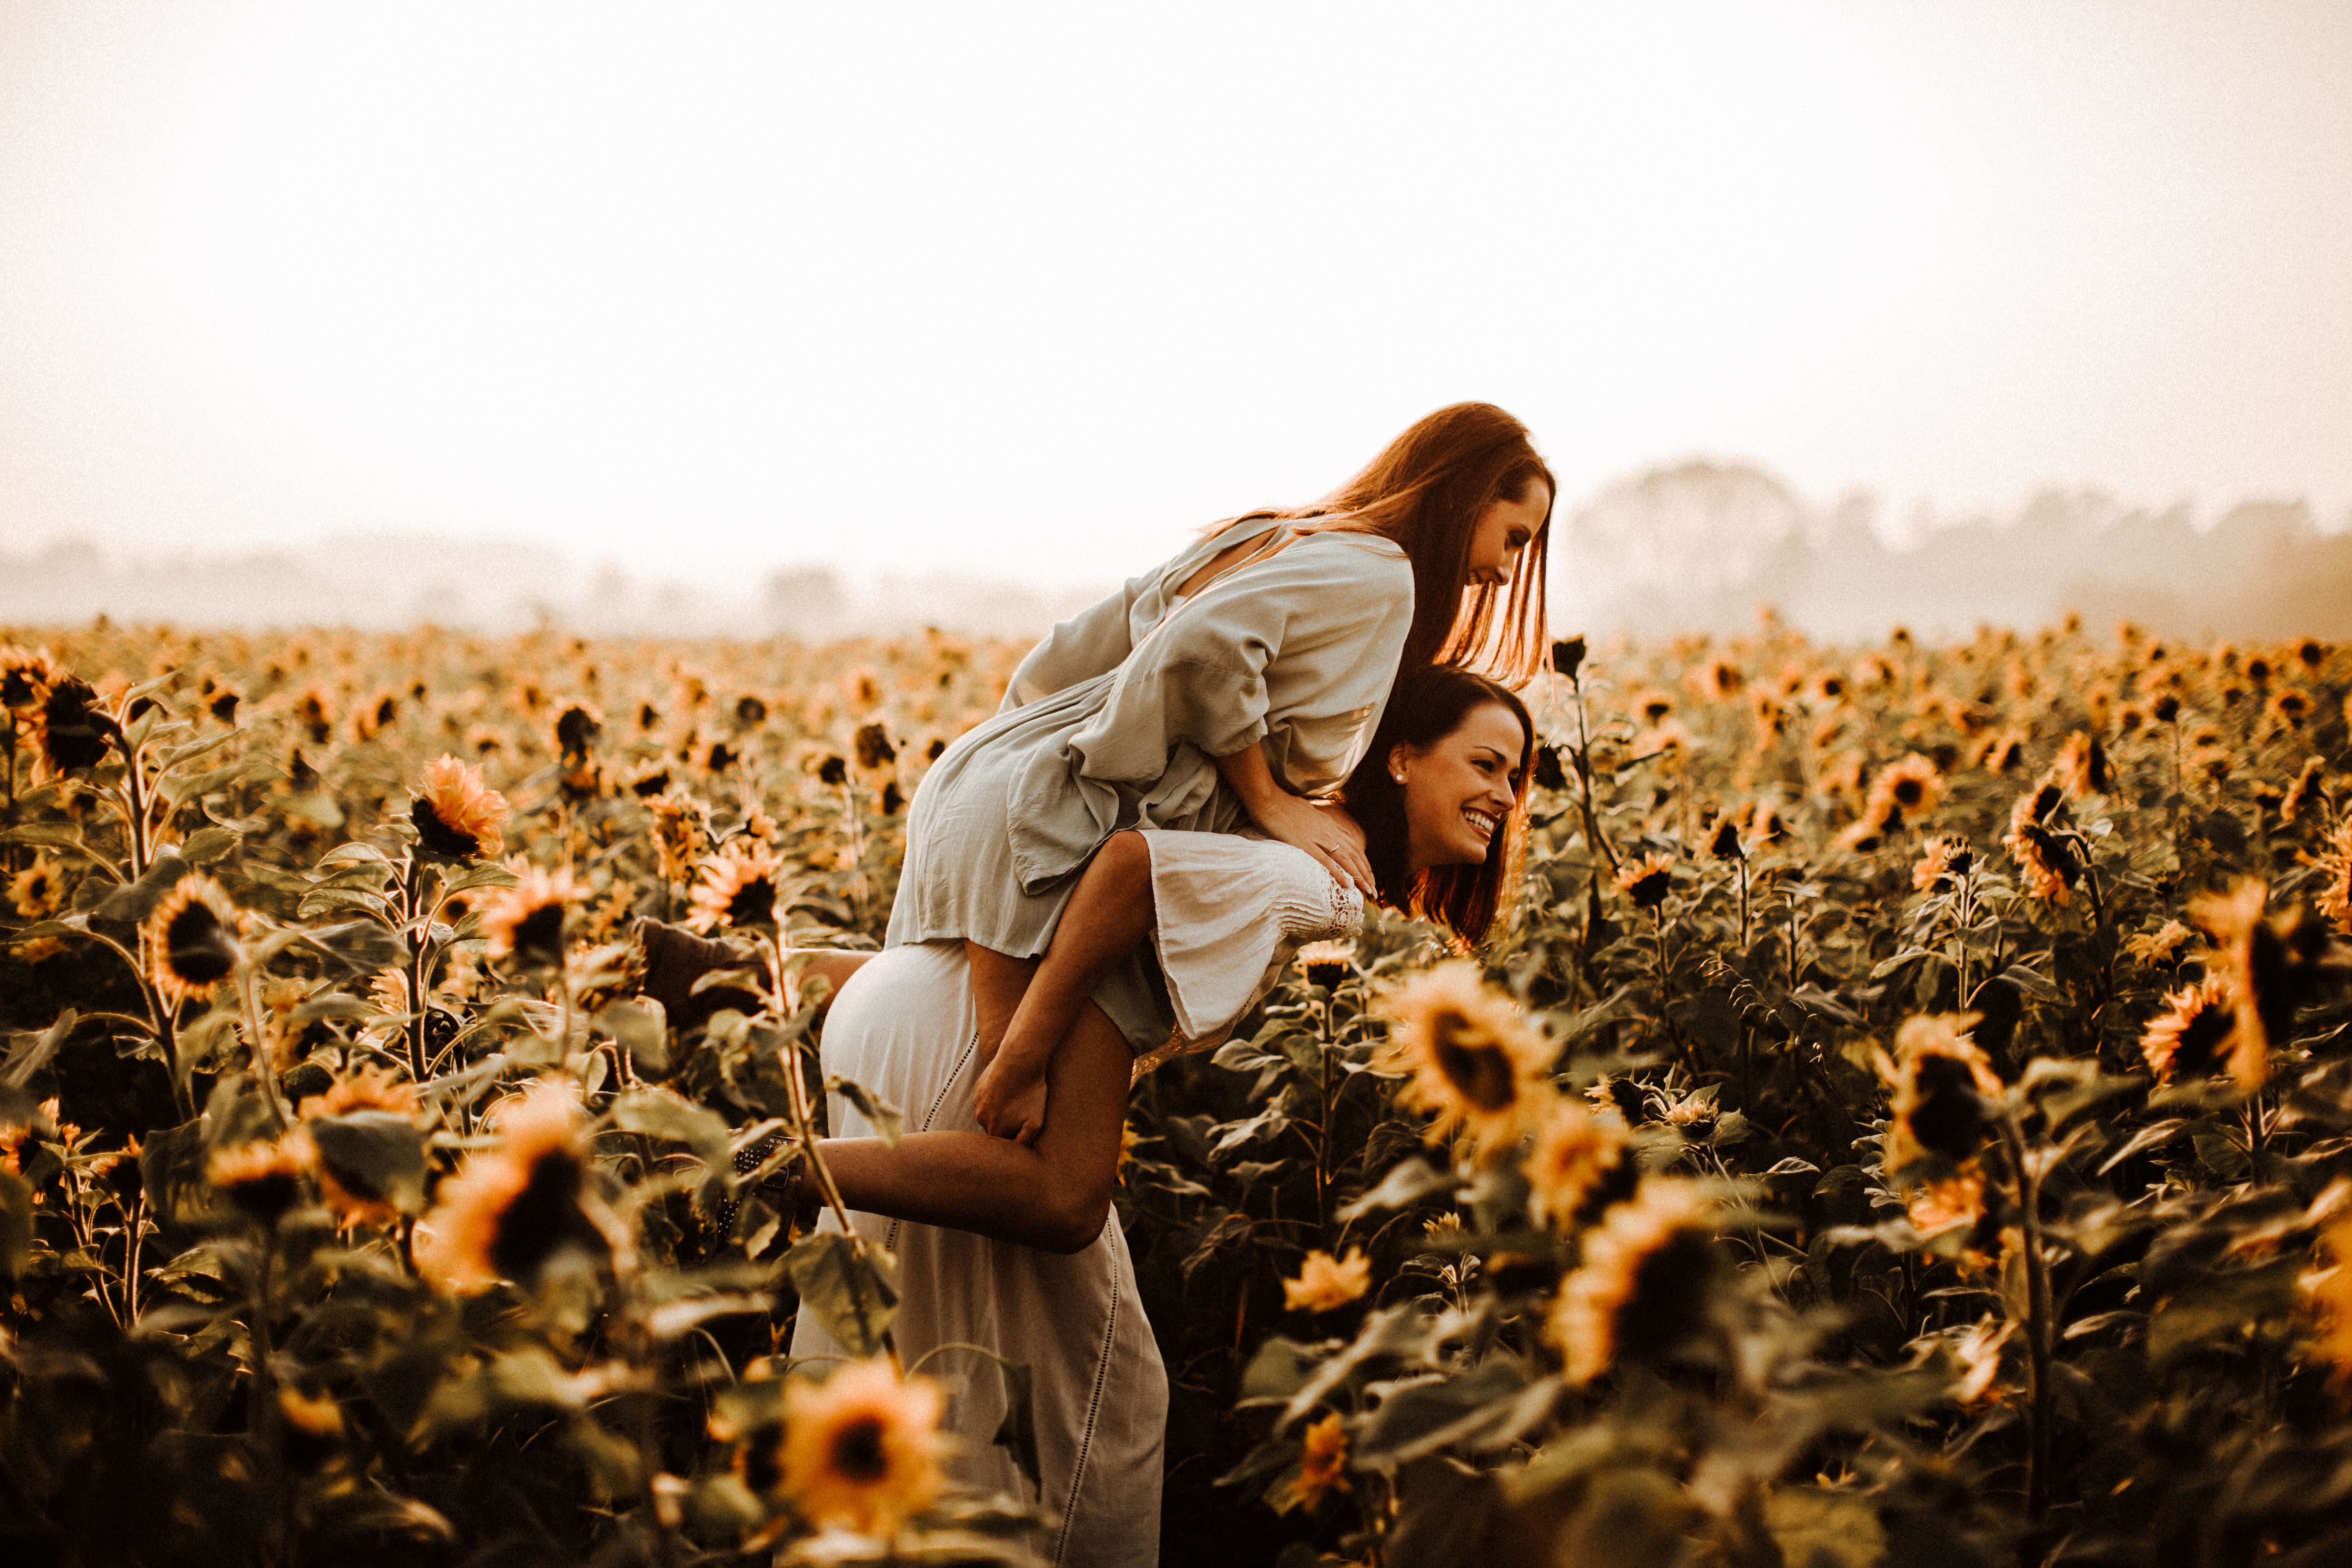 best friends | freundinnenshooting | bffgoals | free spirit | boho | girls have fun | sunset shooting | friends shooting | sunflower field | sunset | golden hour | shooting | just fun | PHOTOGRAPHER: svenja schuerheck fotografie